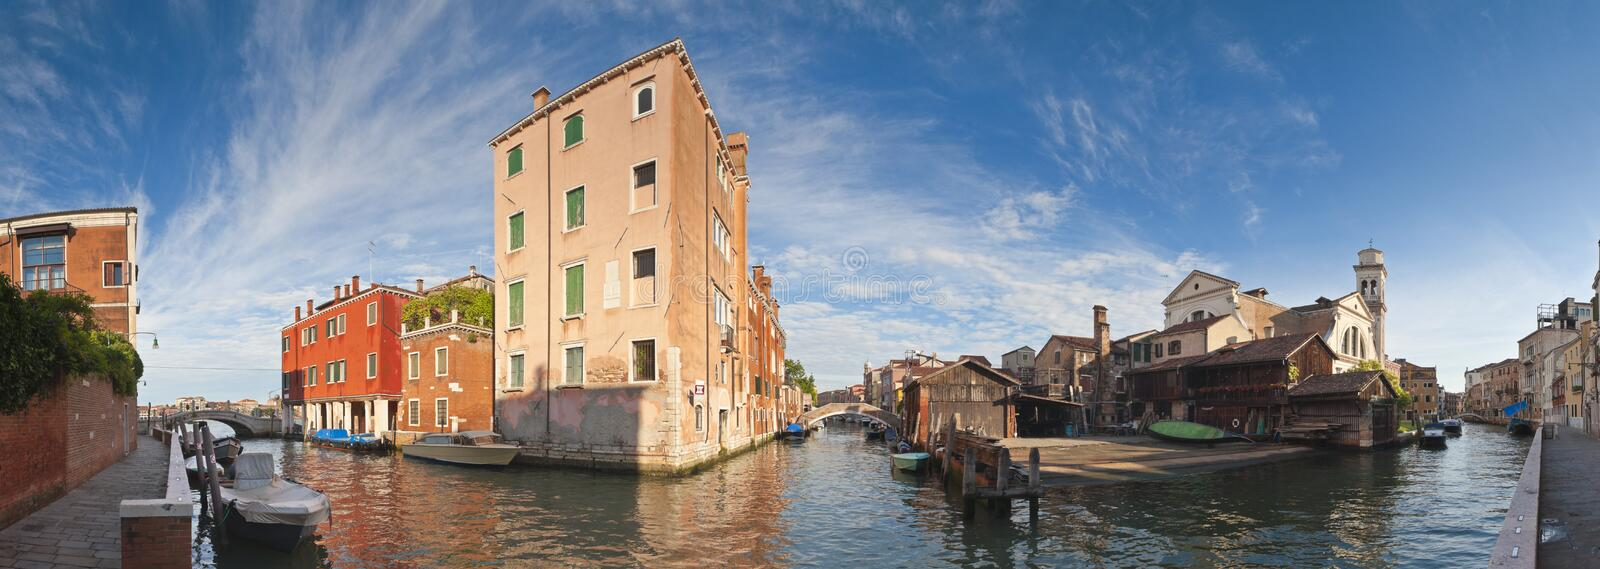 Venice, Italy. Colourful villas, blue sky and Squero di San Trovaso gondola workshop active since the 16th Century, Venice royalty free stock image